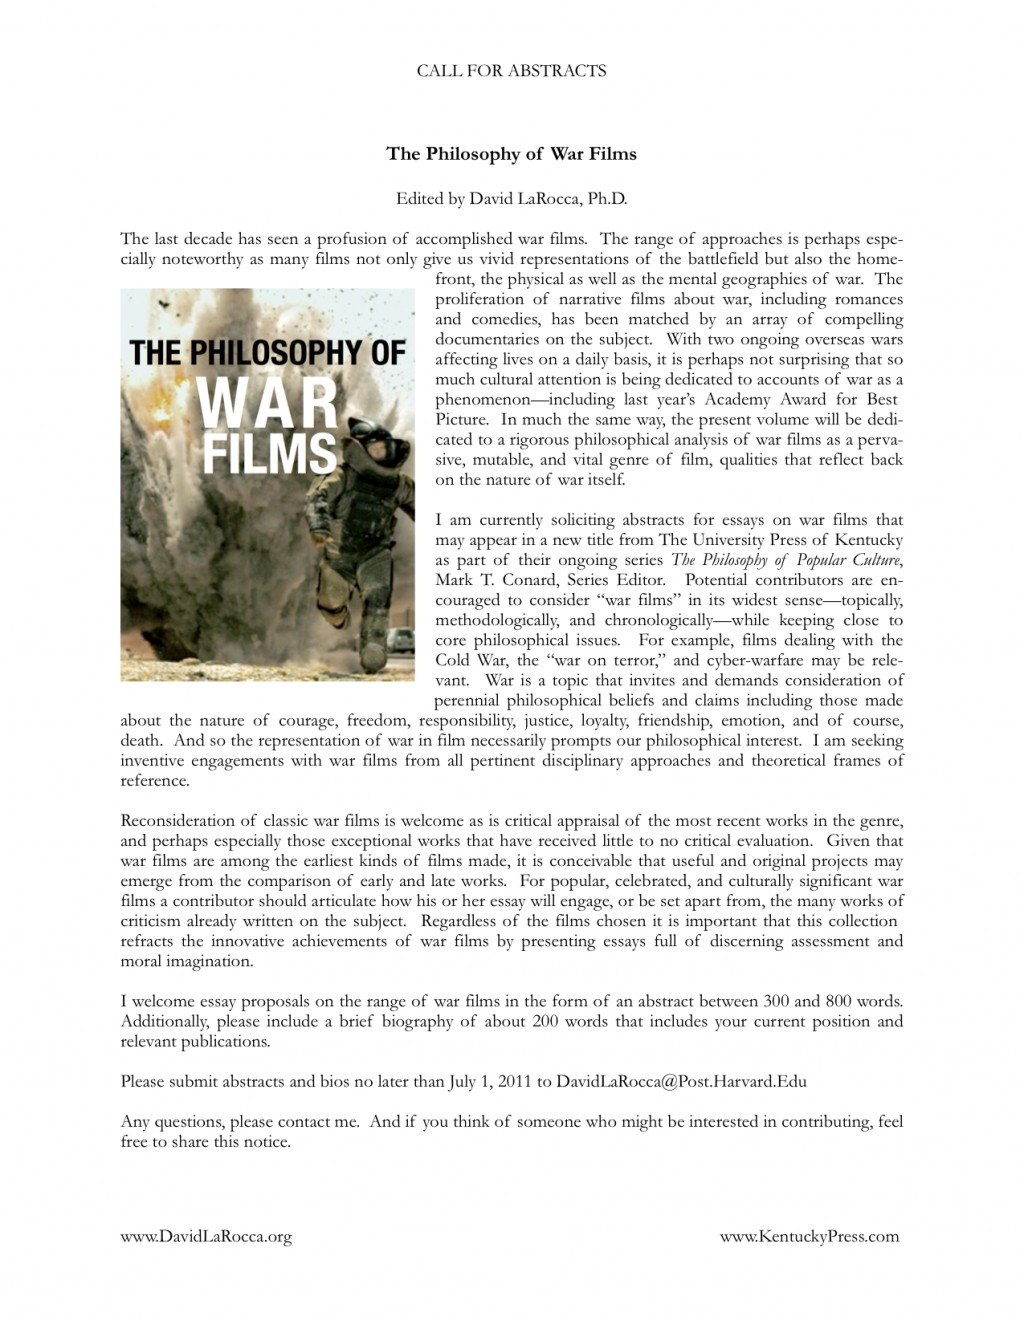 008 Philosophy Of War Films Cfp Larocca Essay Collection Shocking Collections For Students 2017 Best Pdf Large